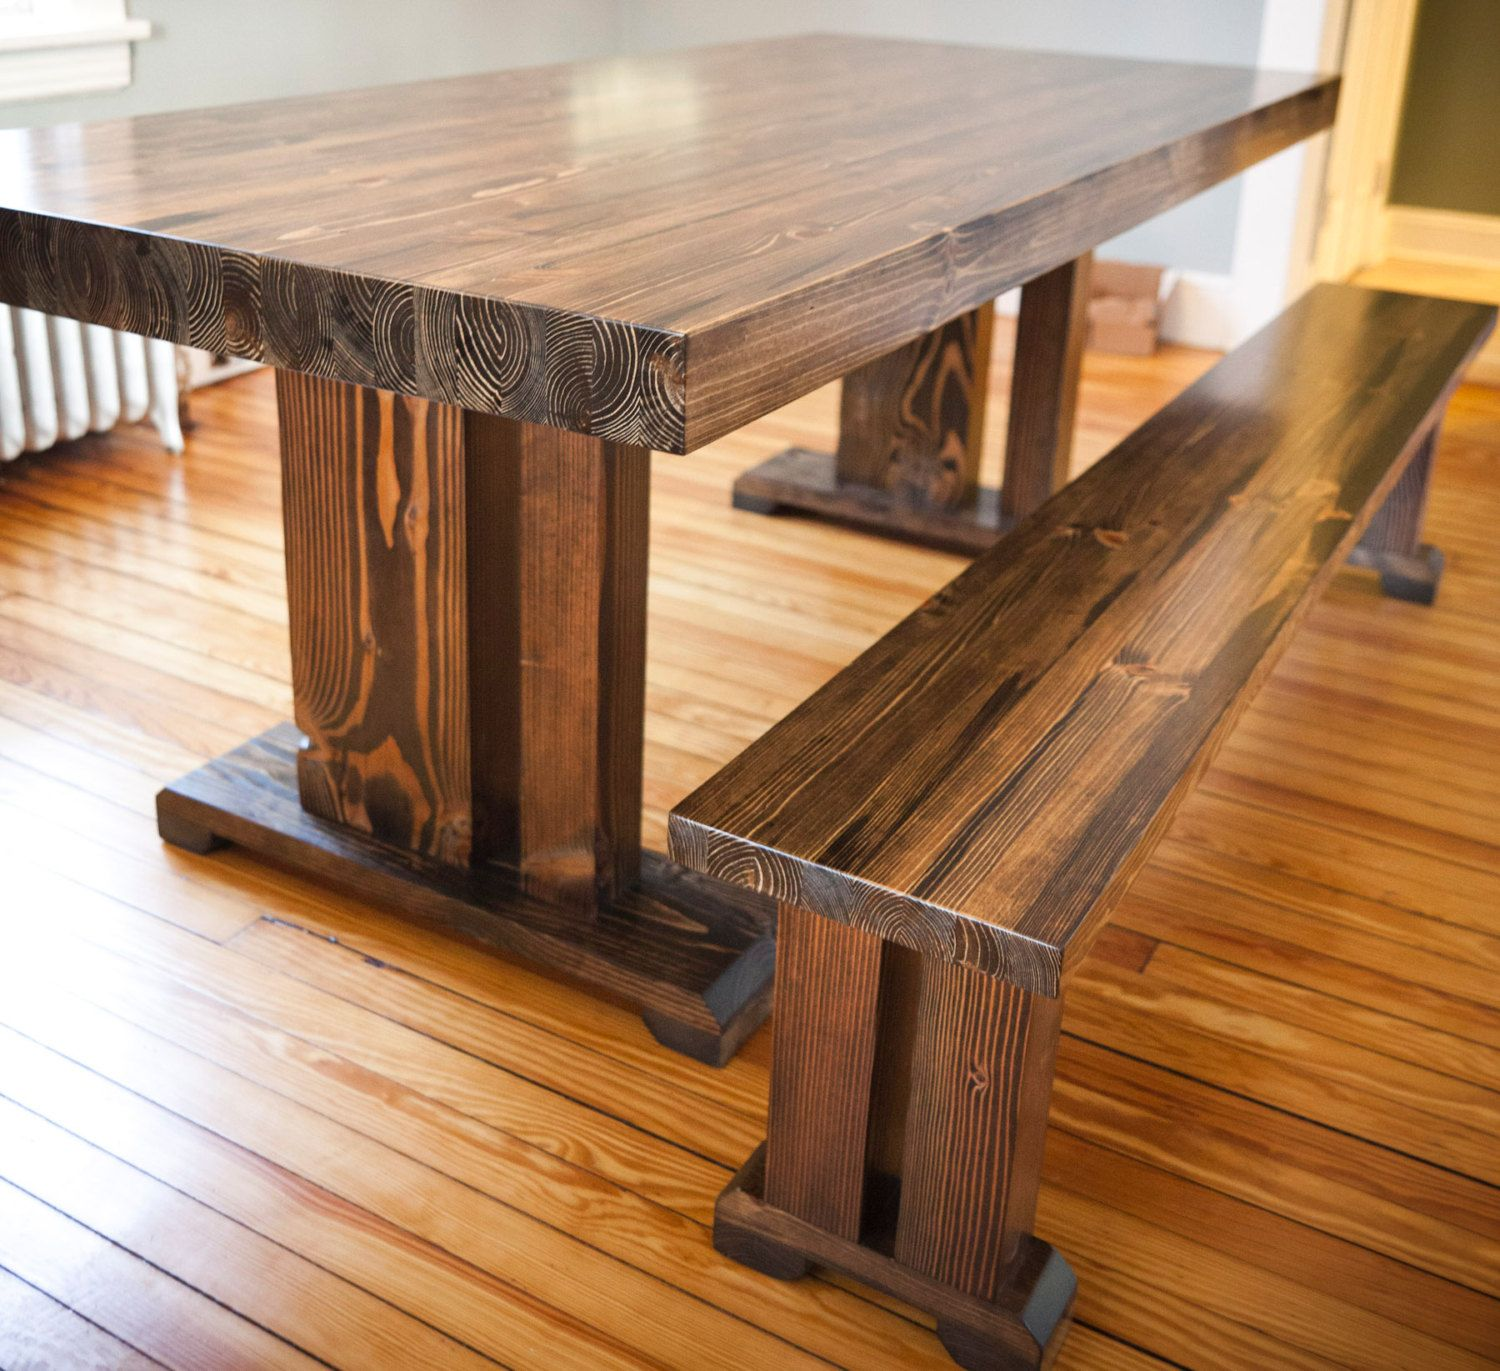 Agreeable Ft Butcher Block Style Table Solid Wood Bench Farmhouse By Emmorworks Zoom Il Fullxfull Ap As Well Rustic Counter Height Dining And